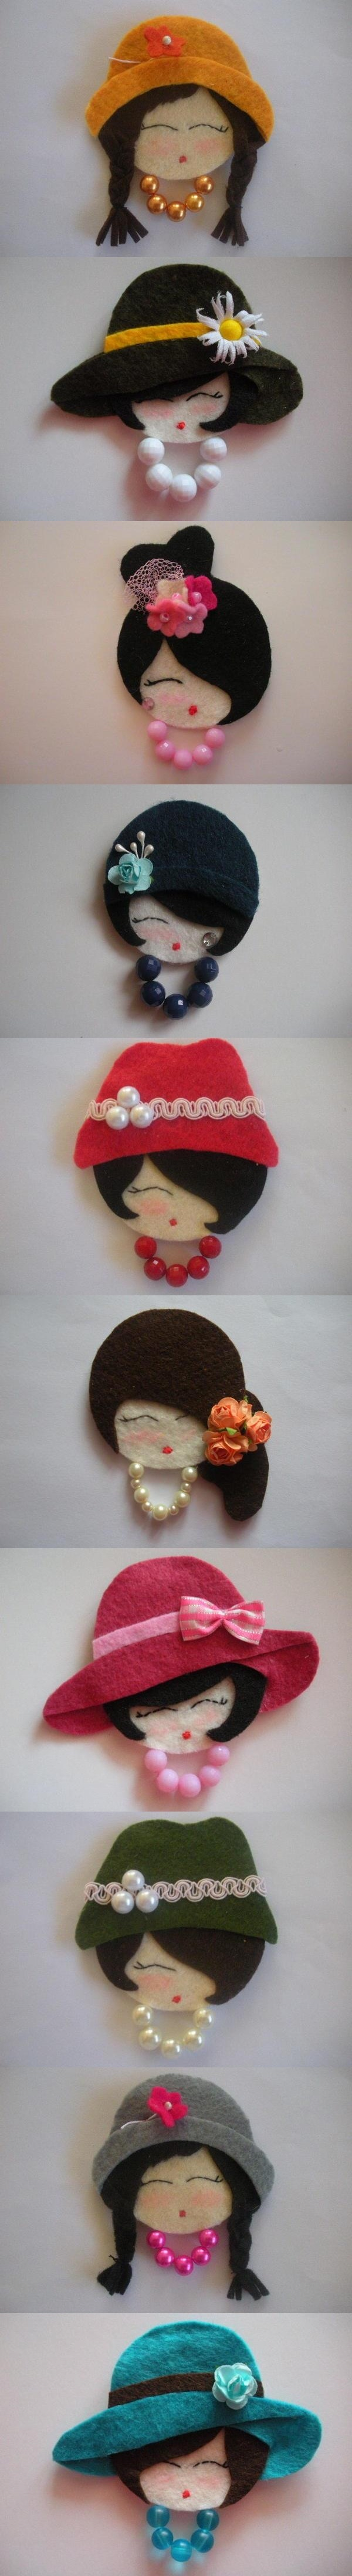 Manualidades en fieltro on pinterest manualidades - Broches de fieltro munecas ...